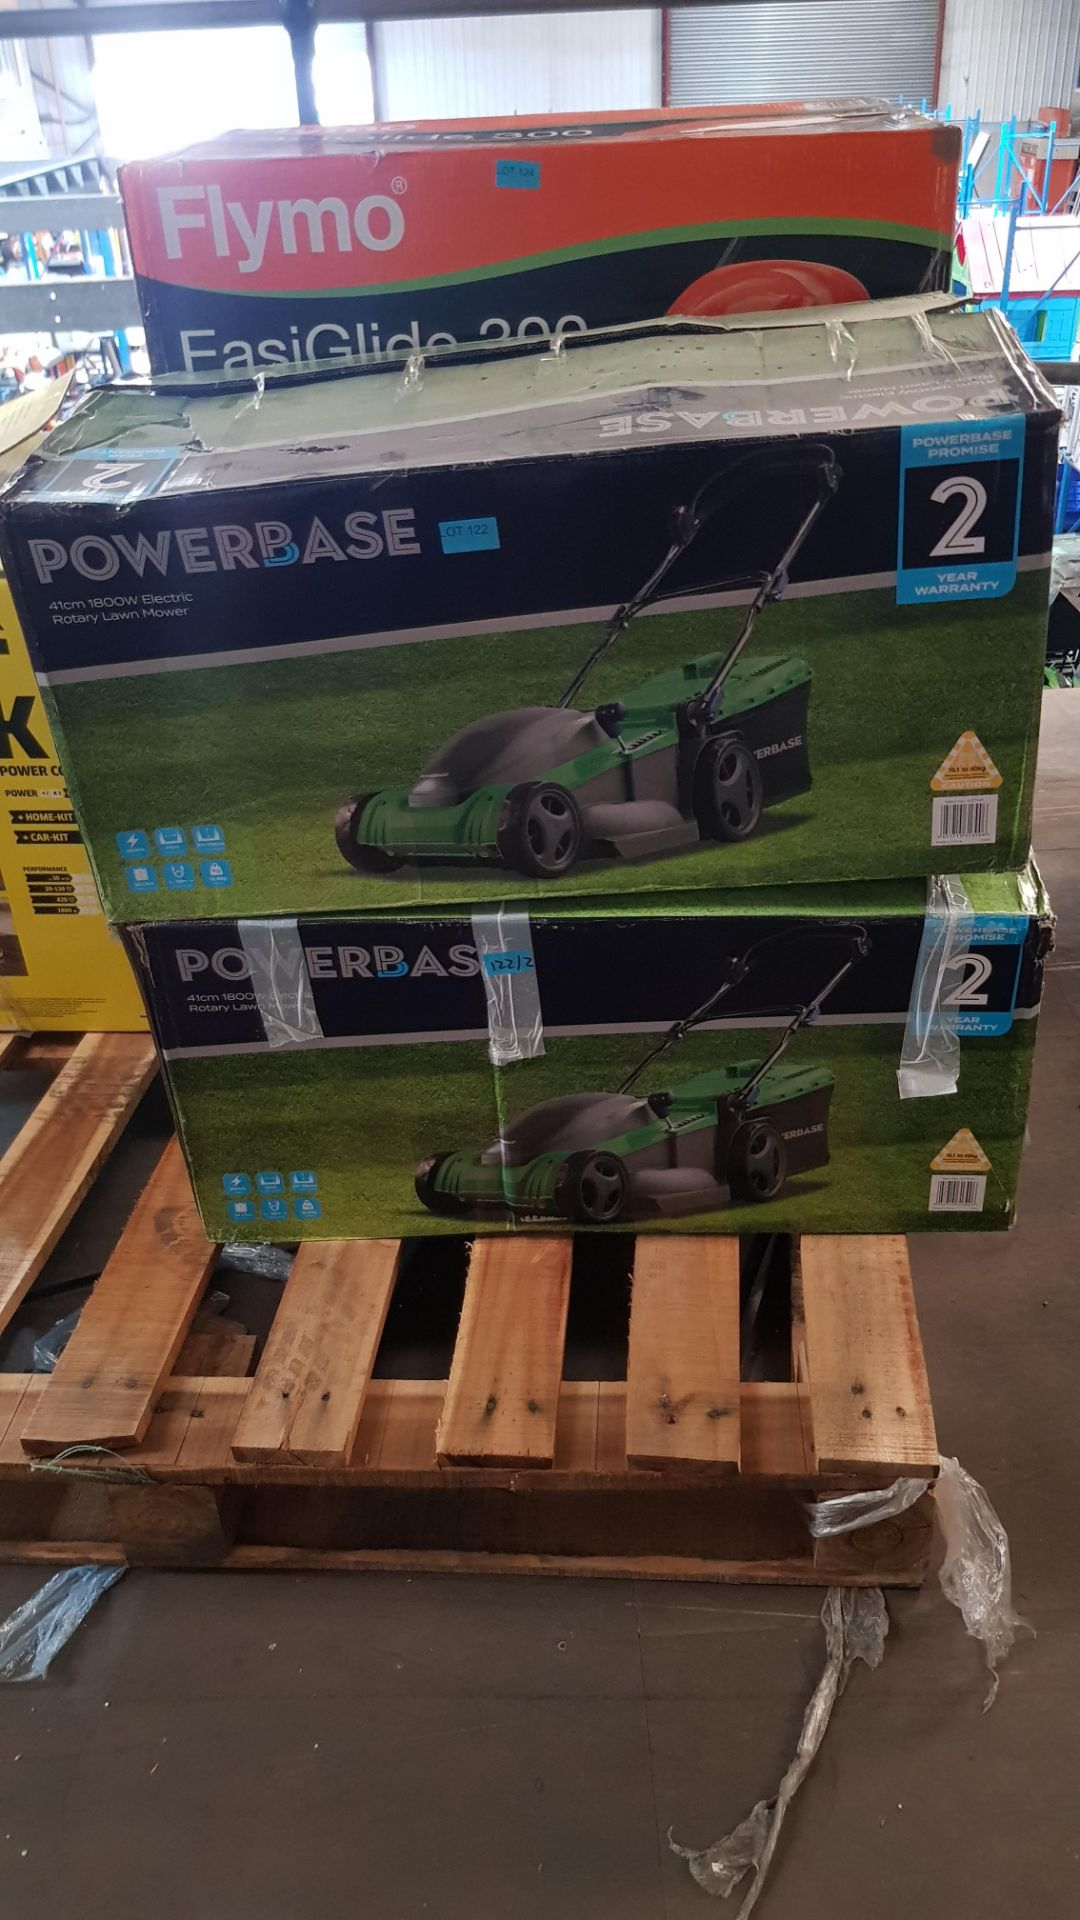 (P2) 2x Powerbase 41cm 1800W Electric Rotary Lawn Mower. RRP £119.00. - Image 3 of 3